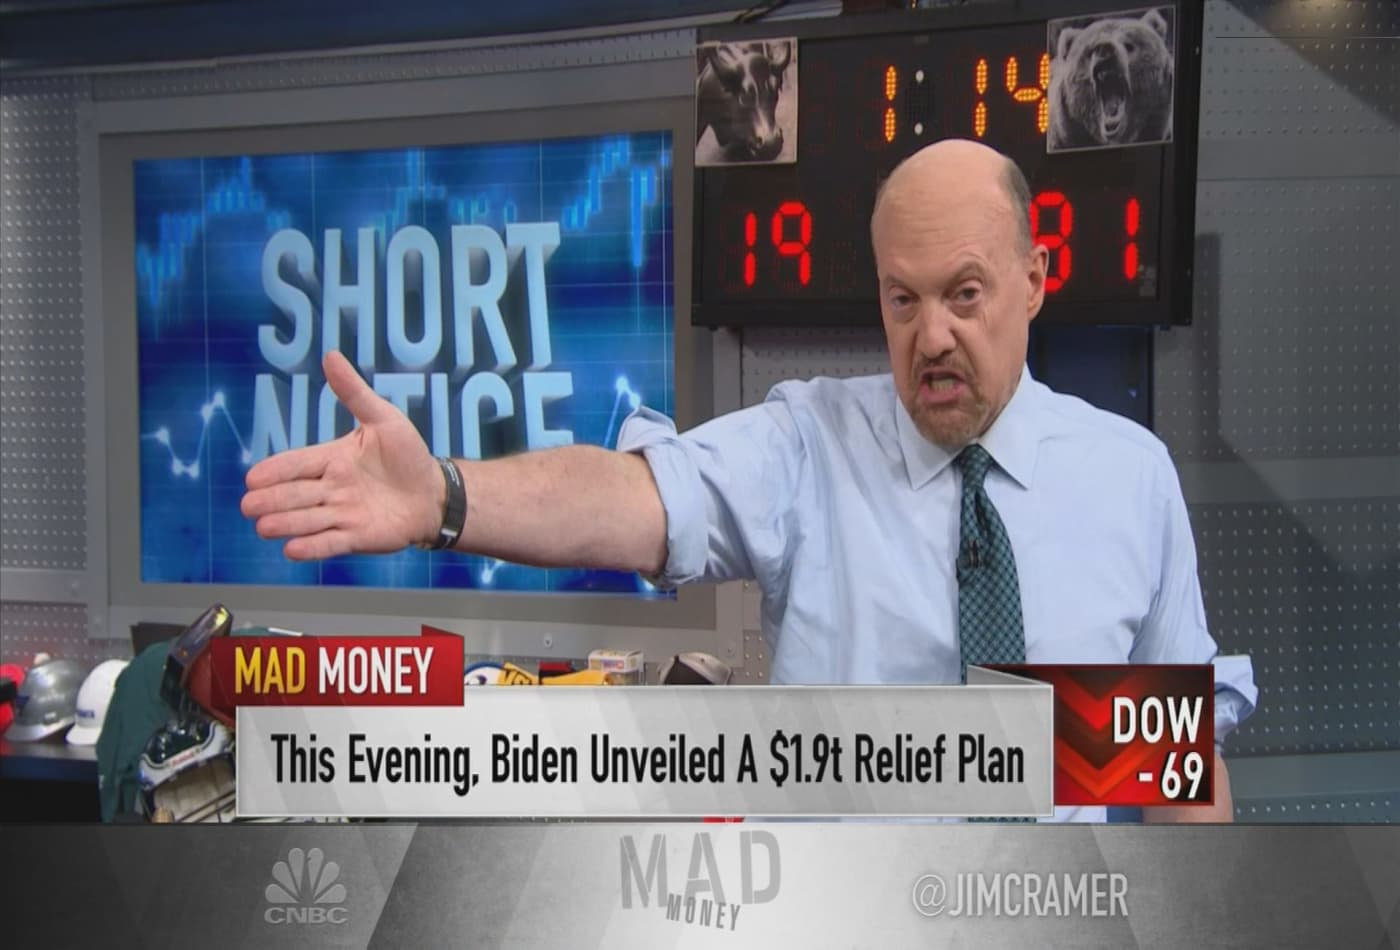 Short squeezes are generating major gains in stocks, Jim Cramer says